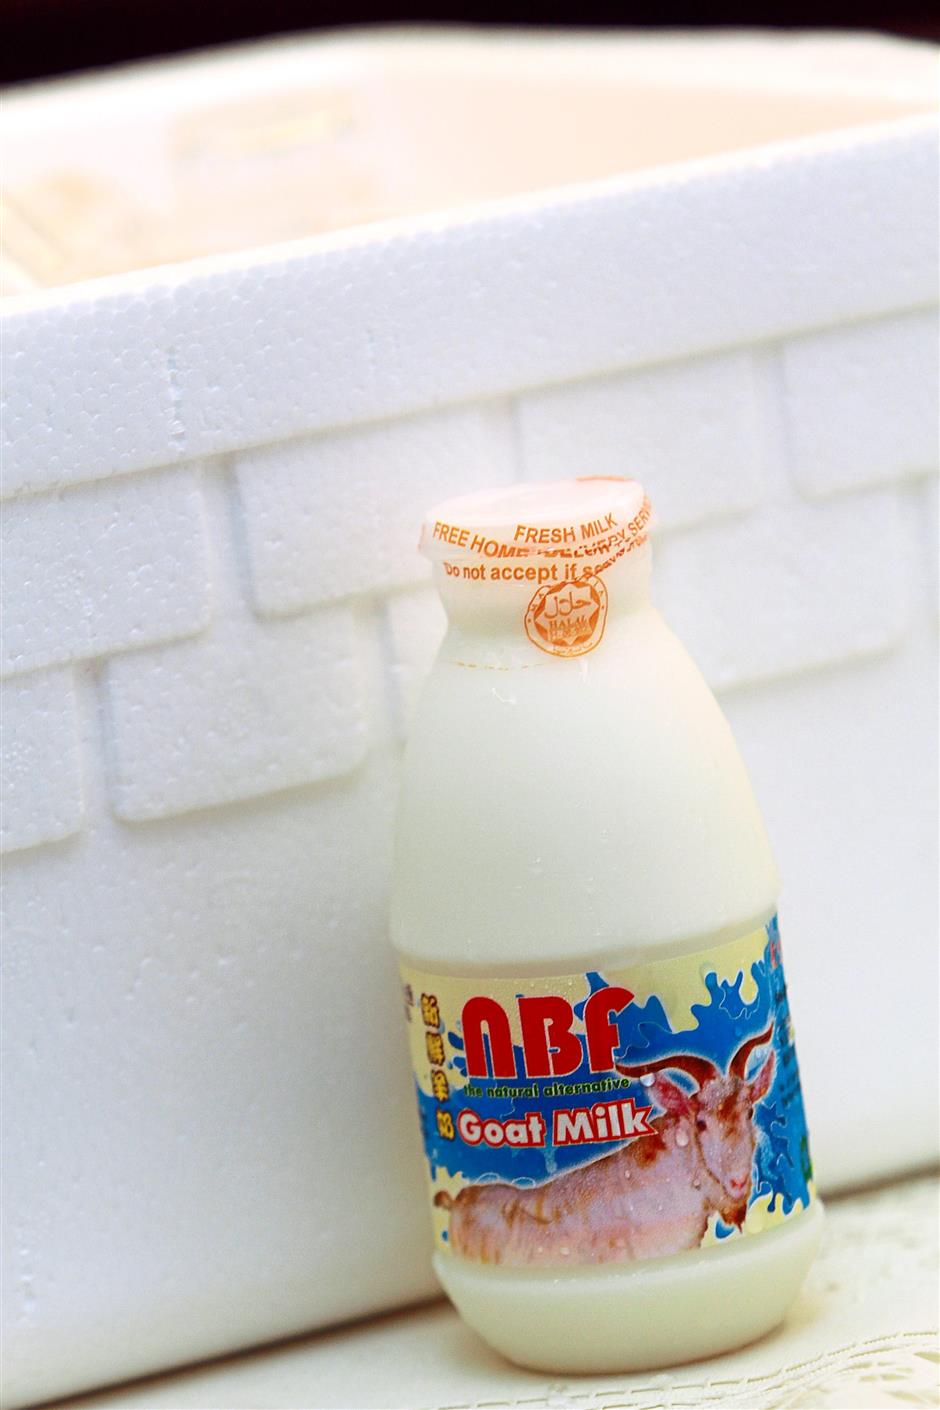 Keeping with times: The modern option of having goat's milk pasteurised, bottled and delivered to one's doorsteps.